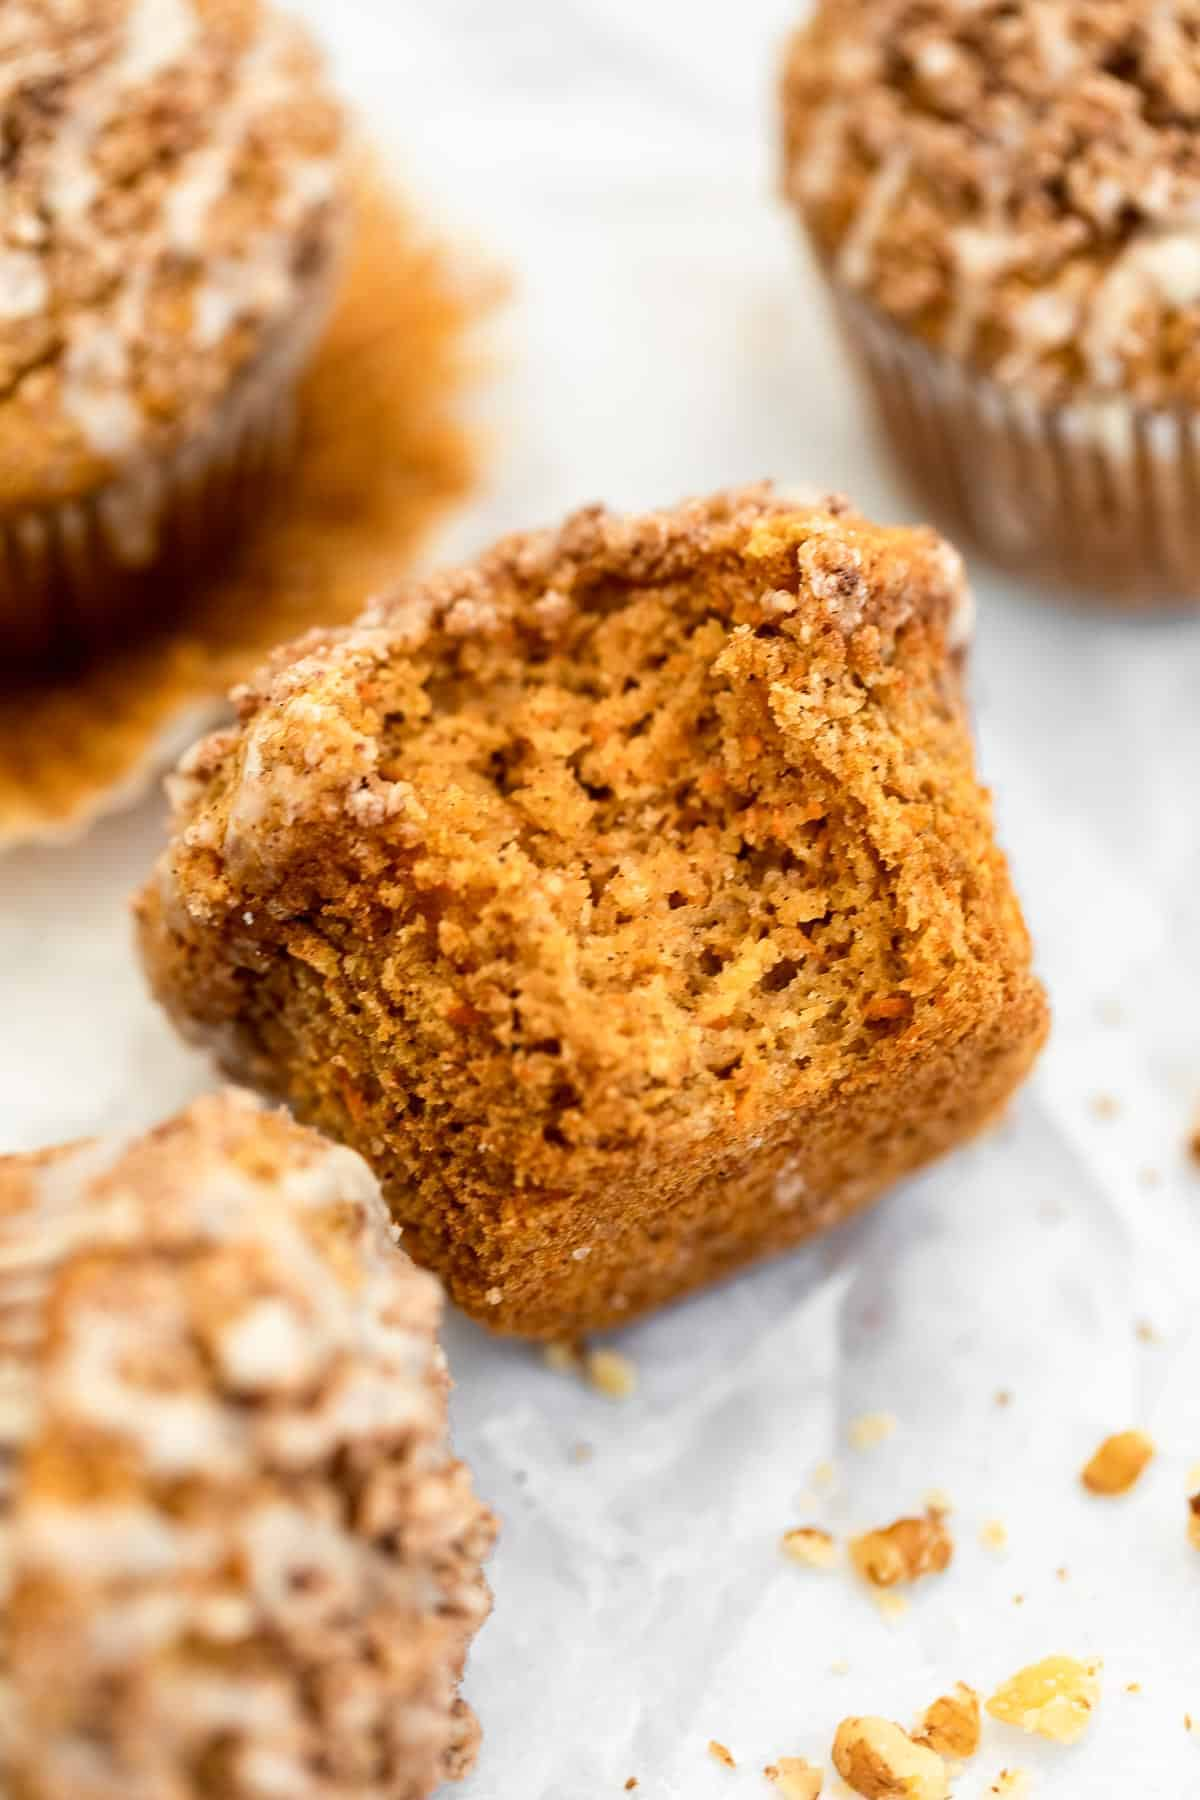 one carrot cake muffin with a bite taken out